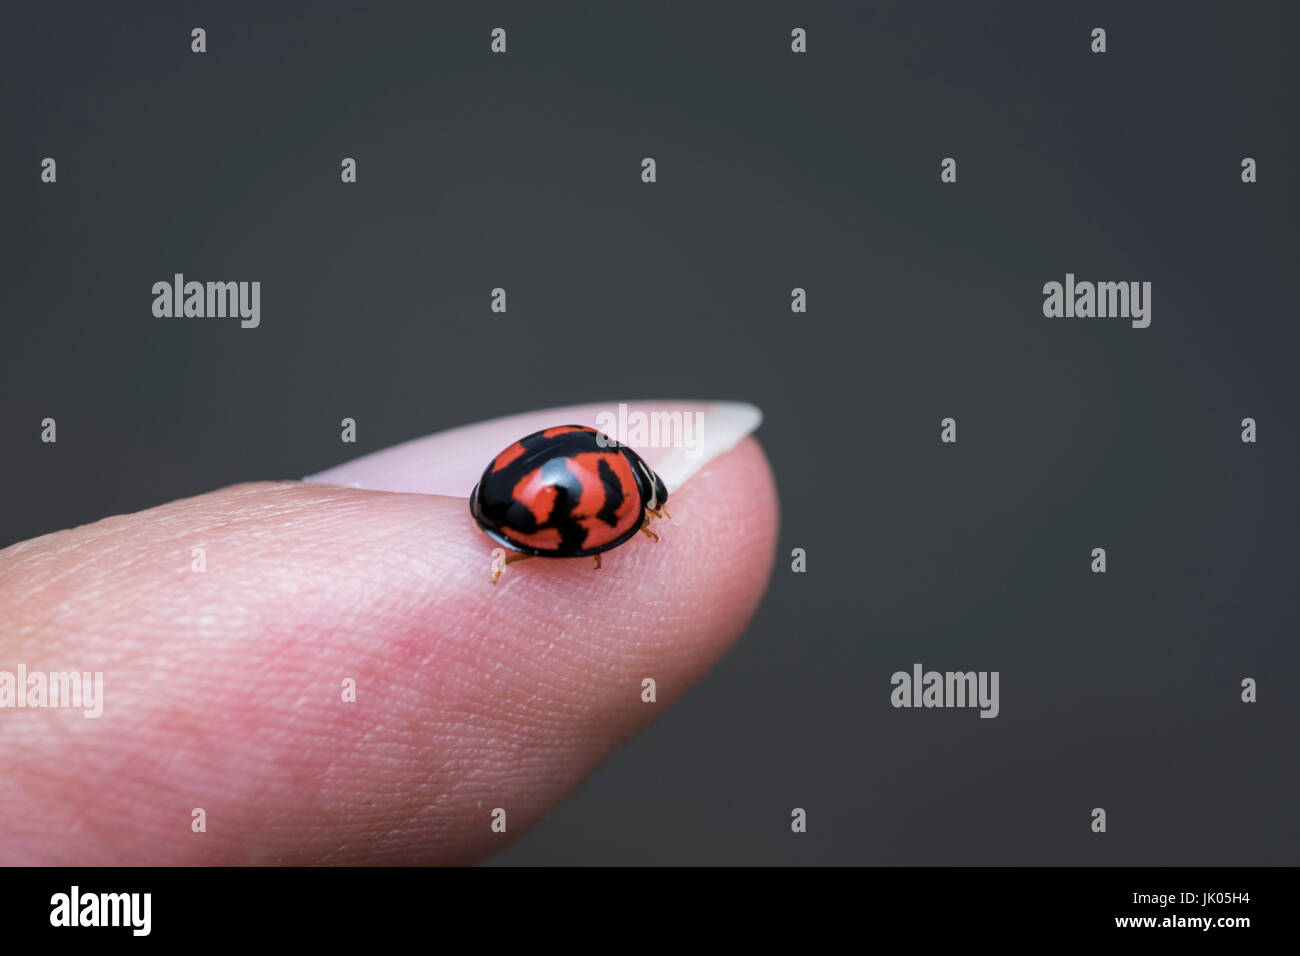 Small ladybug walking on a human finger - Stock Image